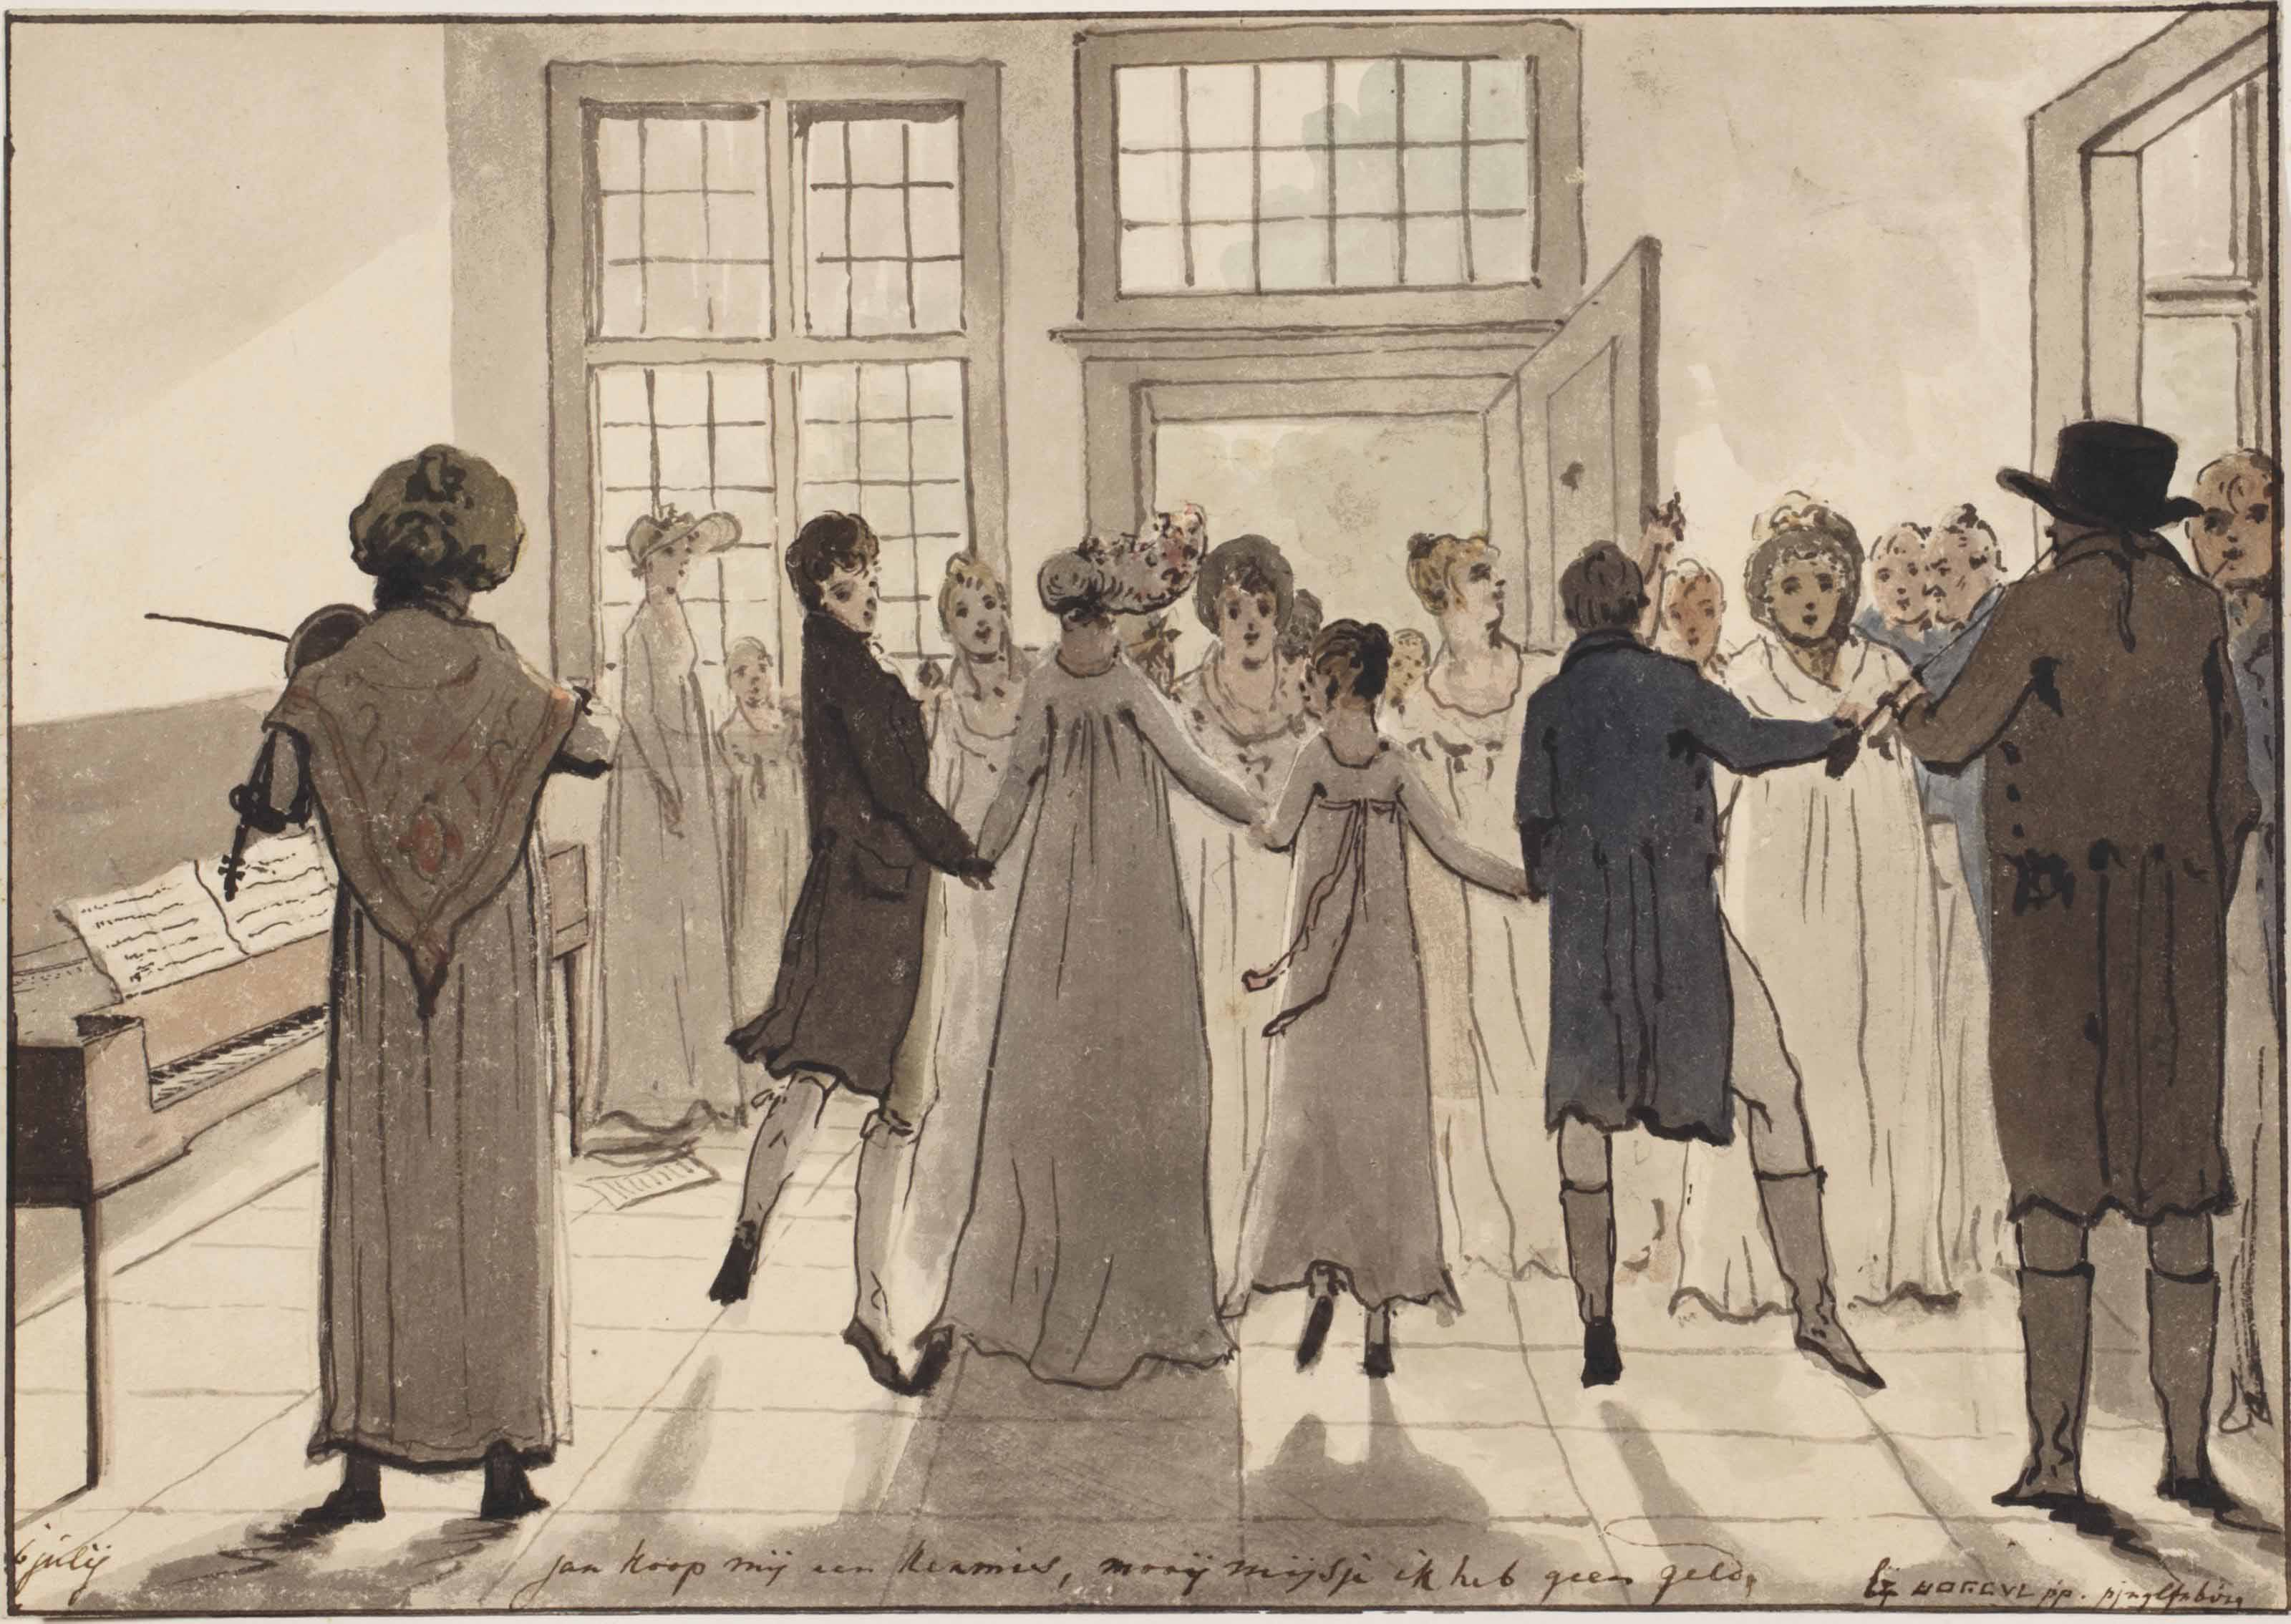 A page from the artist's illustrated diary: A dancing party at the Pingelenburg near Amsterdam